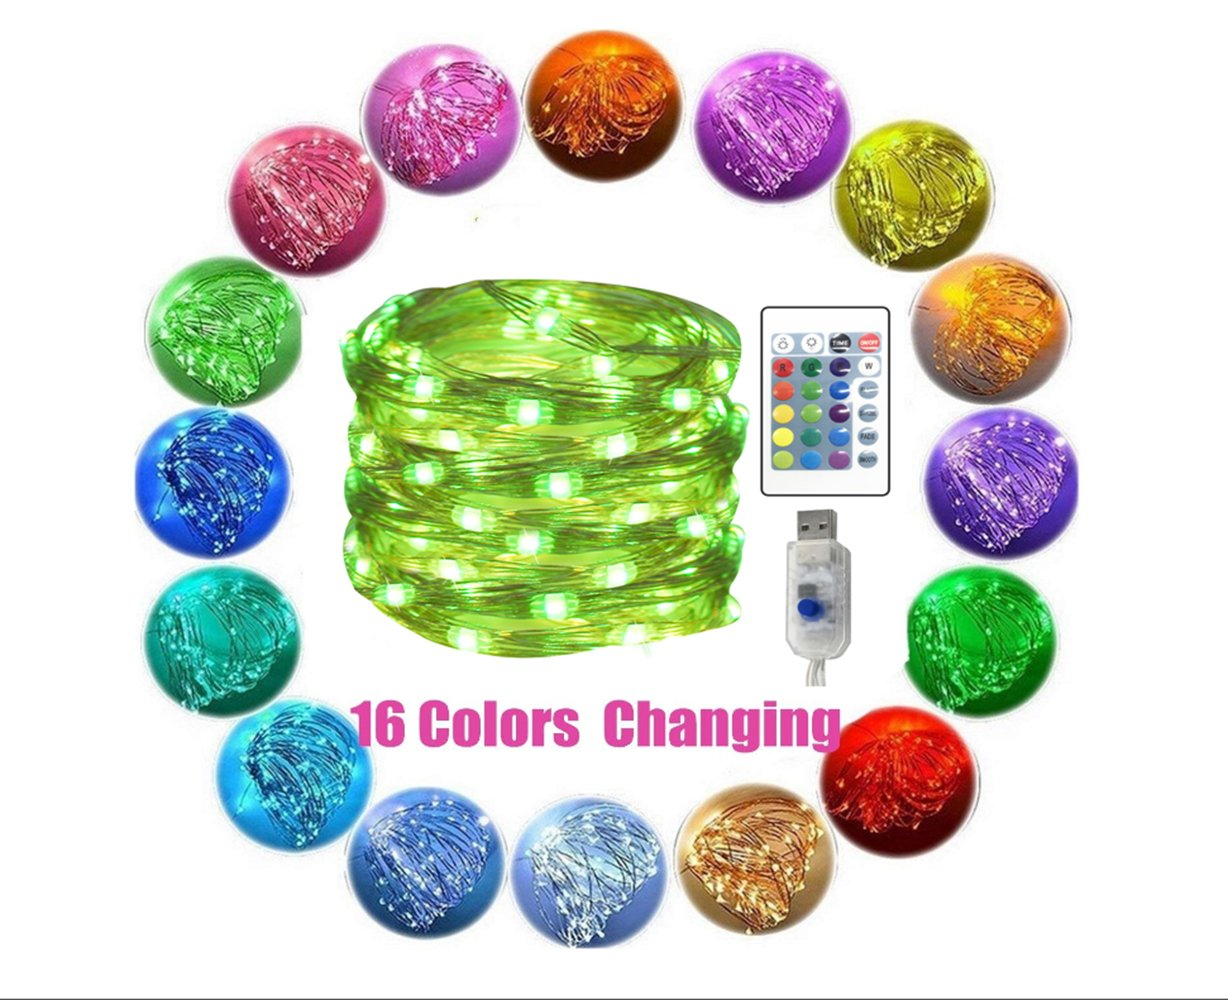 BLDUL Fairy Lights Color Changing String Lights with Remote Timer USB Powered Starry Lights Firefly Twinkle Lights for Bedroom Party Decoration Wedding 10m 100light (10M 100LEDS)